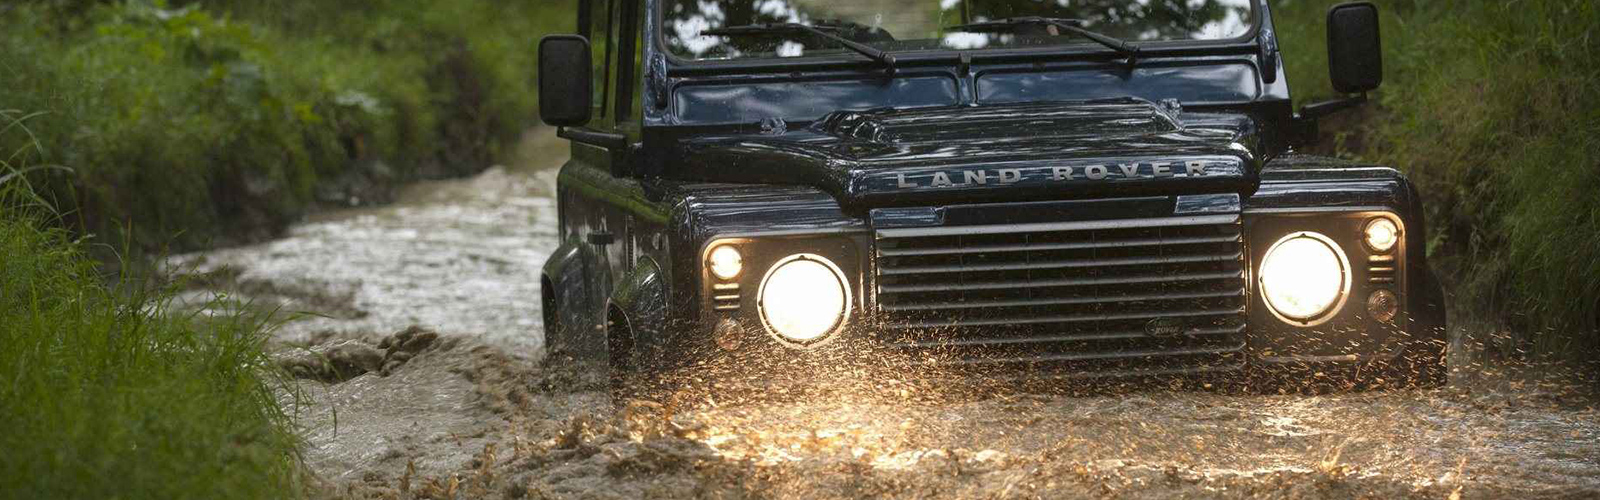 Concierge Belgrade | Off road driving expeirence